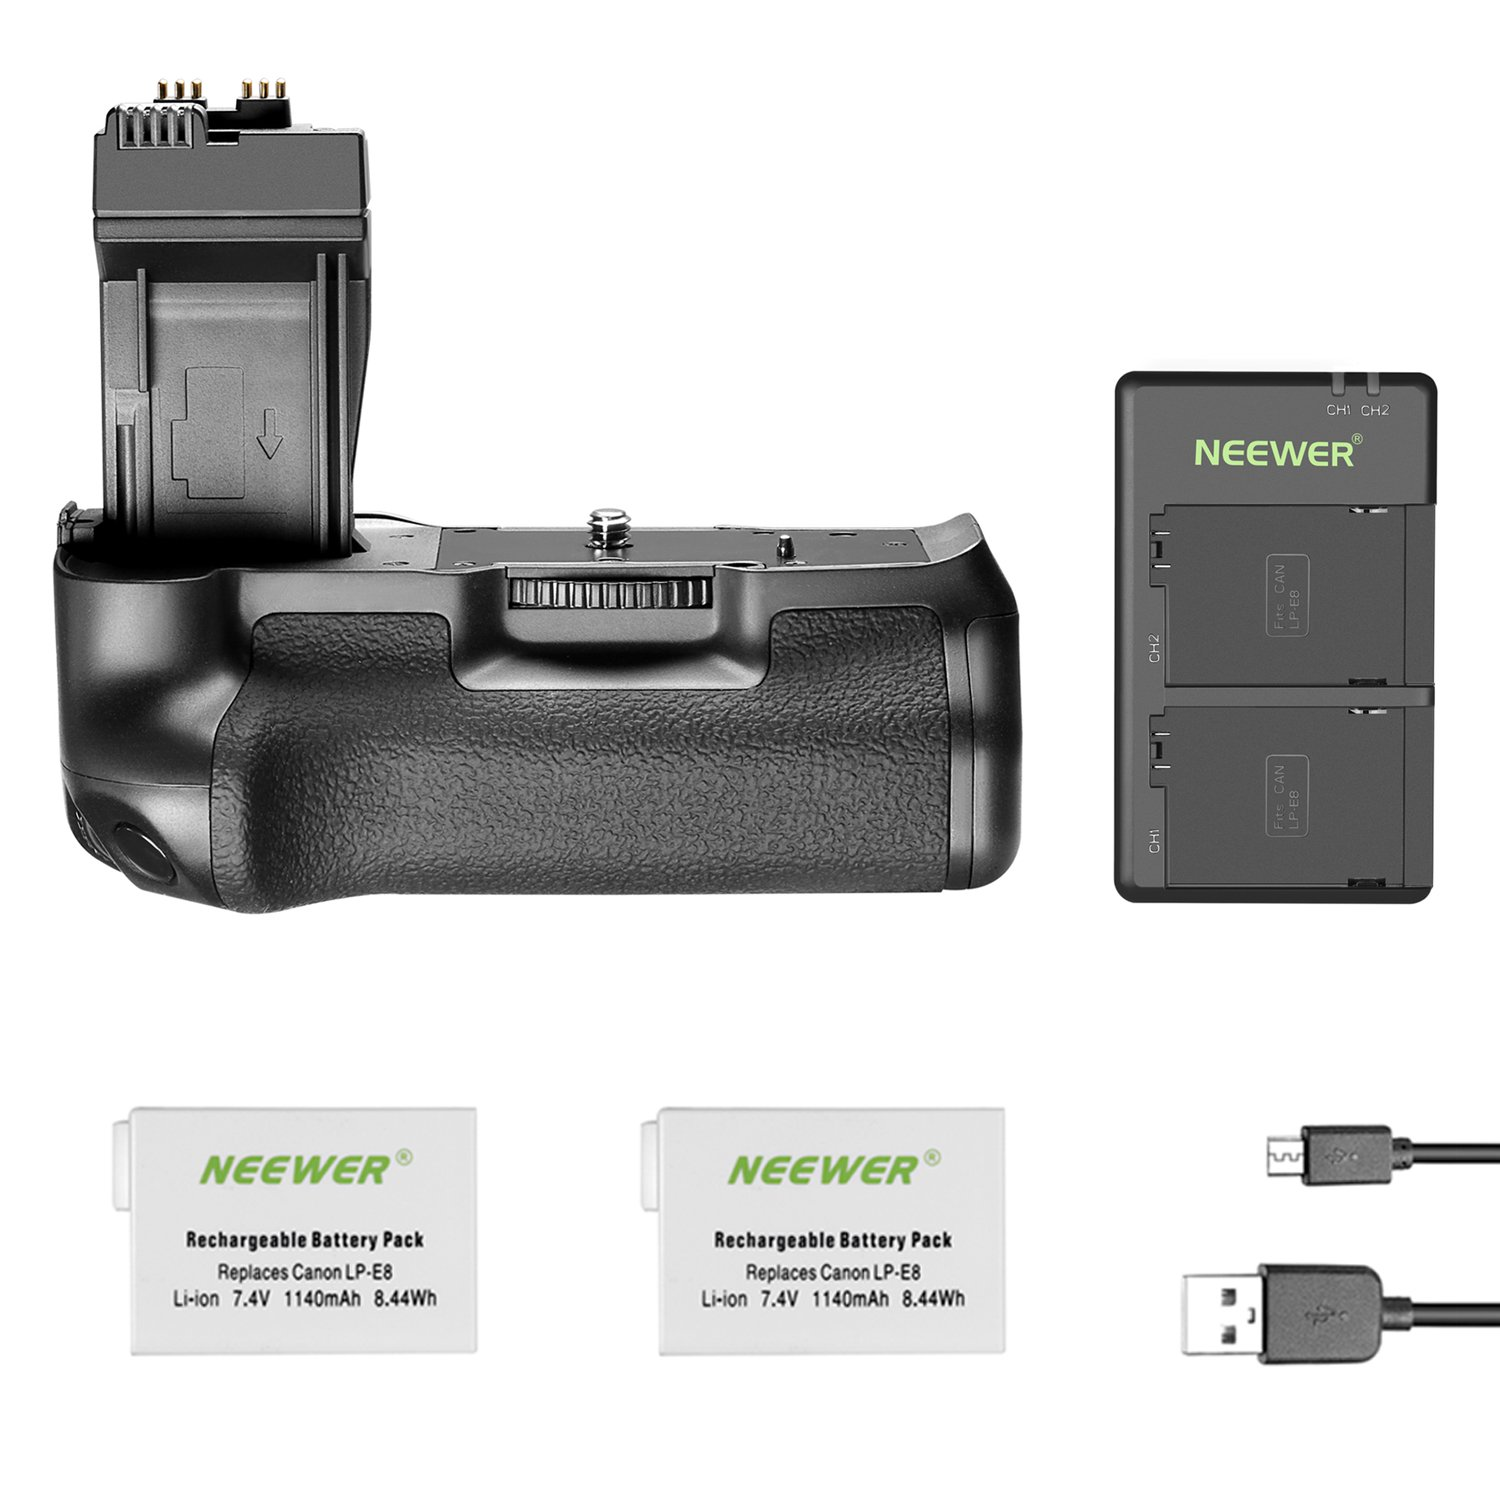 Neewer BG-E8 Replacement Battery Grip for Canon EOS 550D 600D 650D 700D Rebel T2i T3i T4i T5i DSLR Cameras, Comes with 2-Pack 1140 mAh LP-E8 Replacement Li-ion Battery and Dual Battery Charger 90091084@@os1